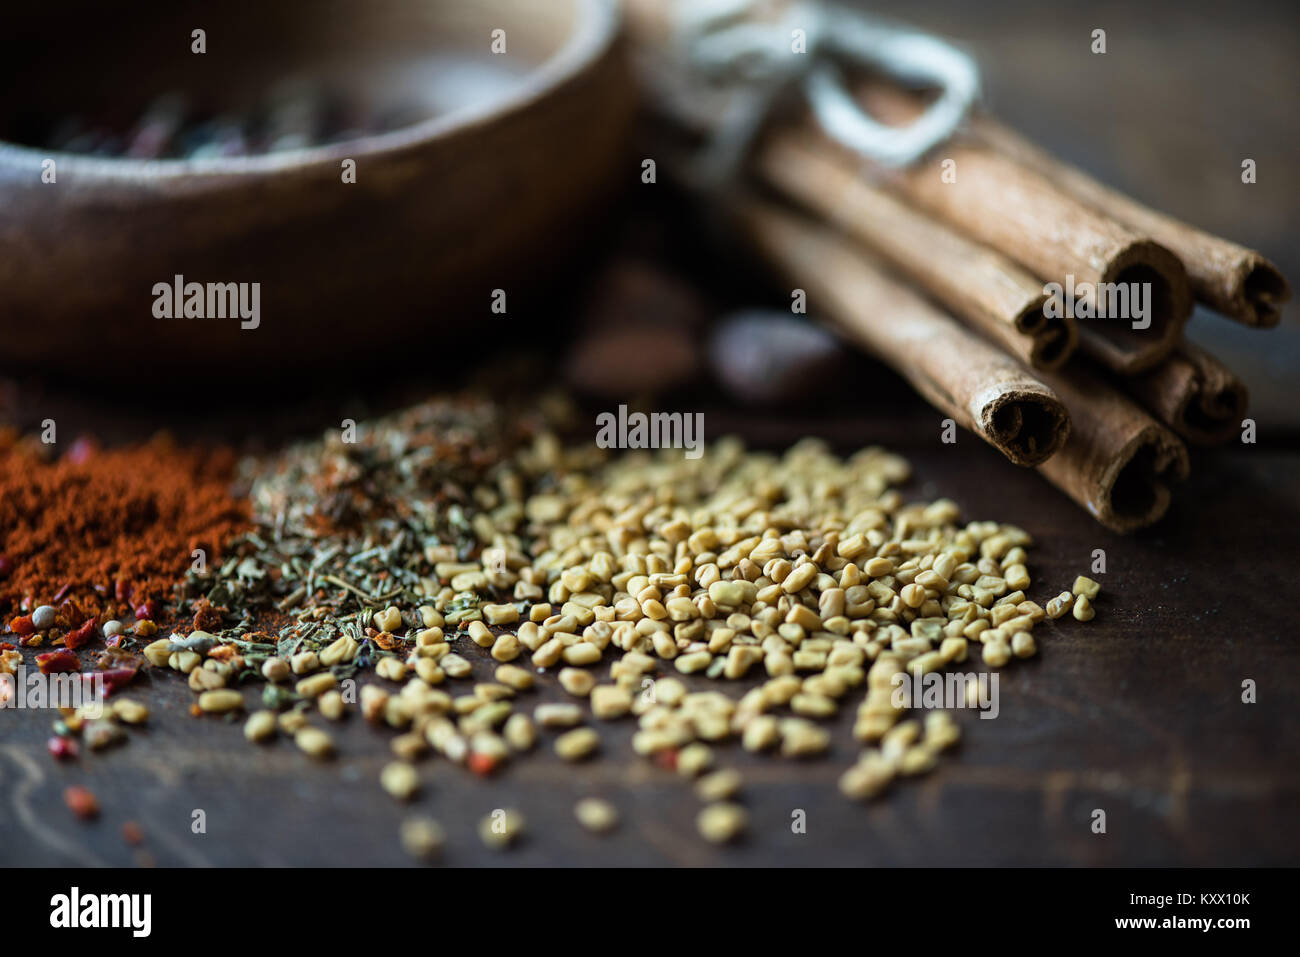 close up of scattered sesame seeds and herbs with cinnamon on wooden tabletop - Stock Image